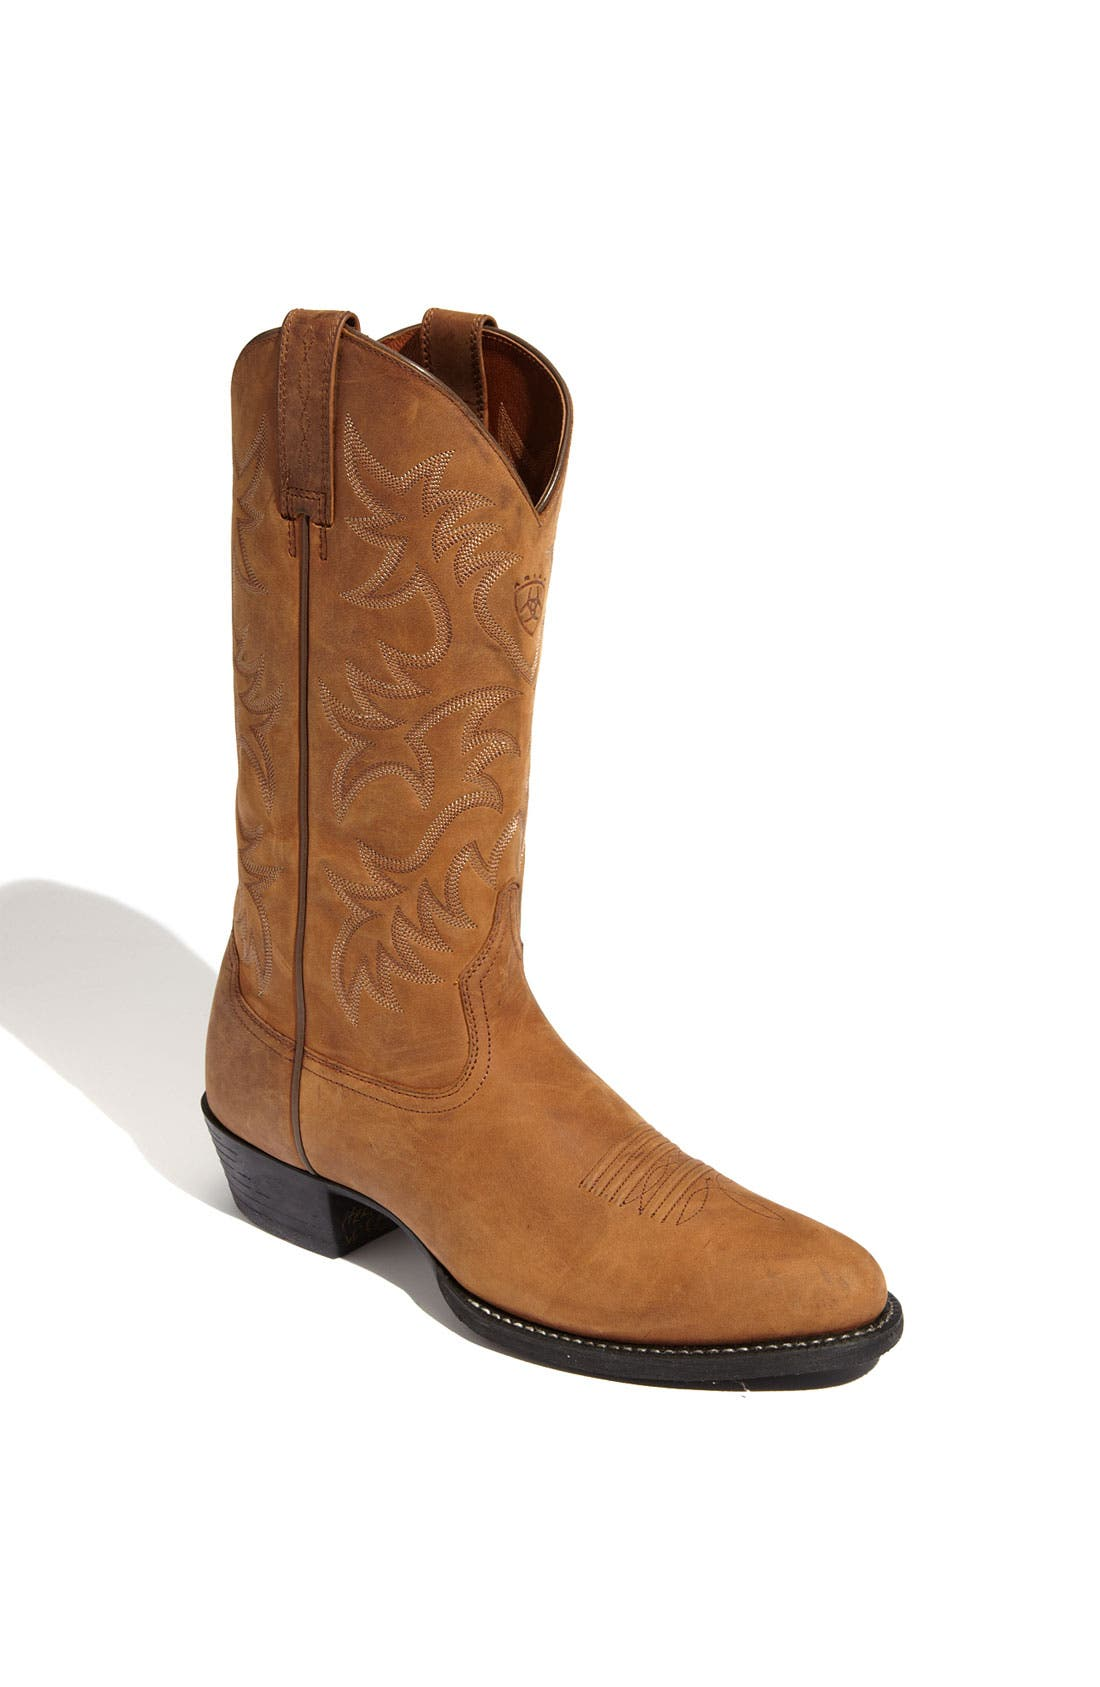 Main Image - Ariat 'Heritage' Boot